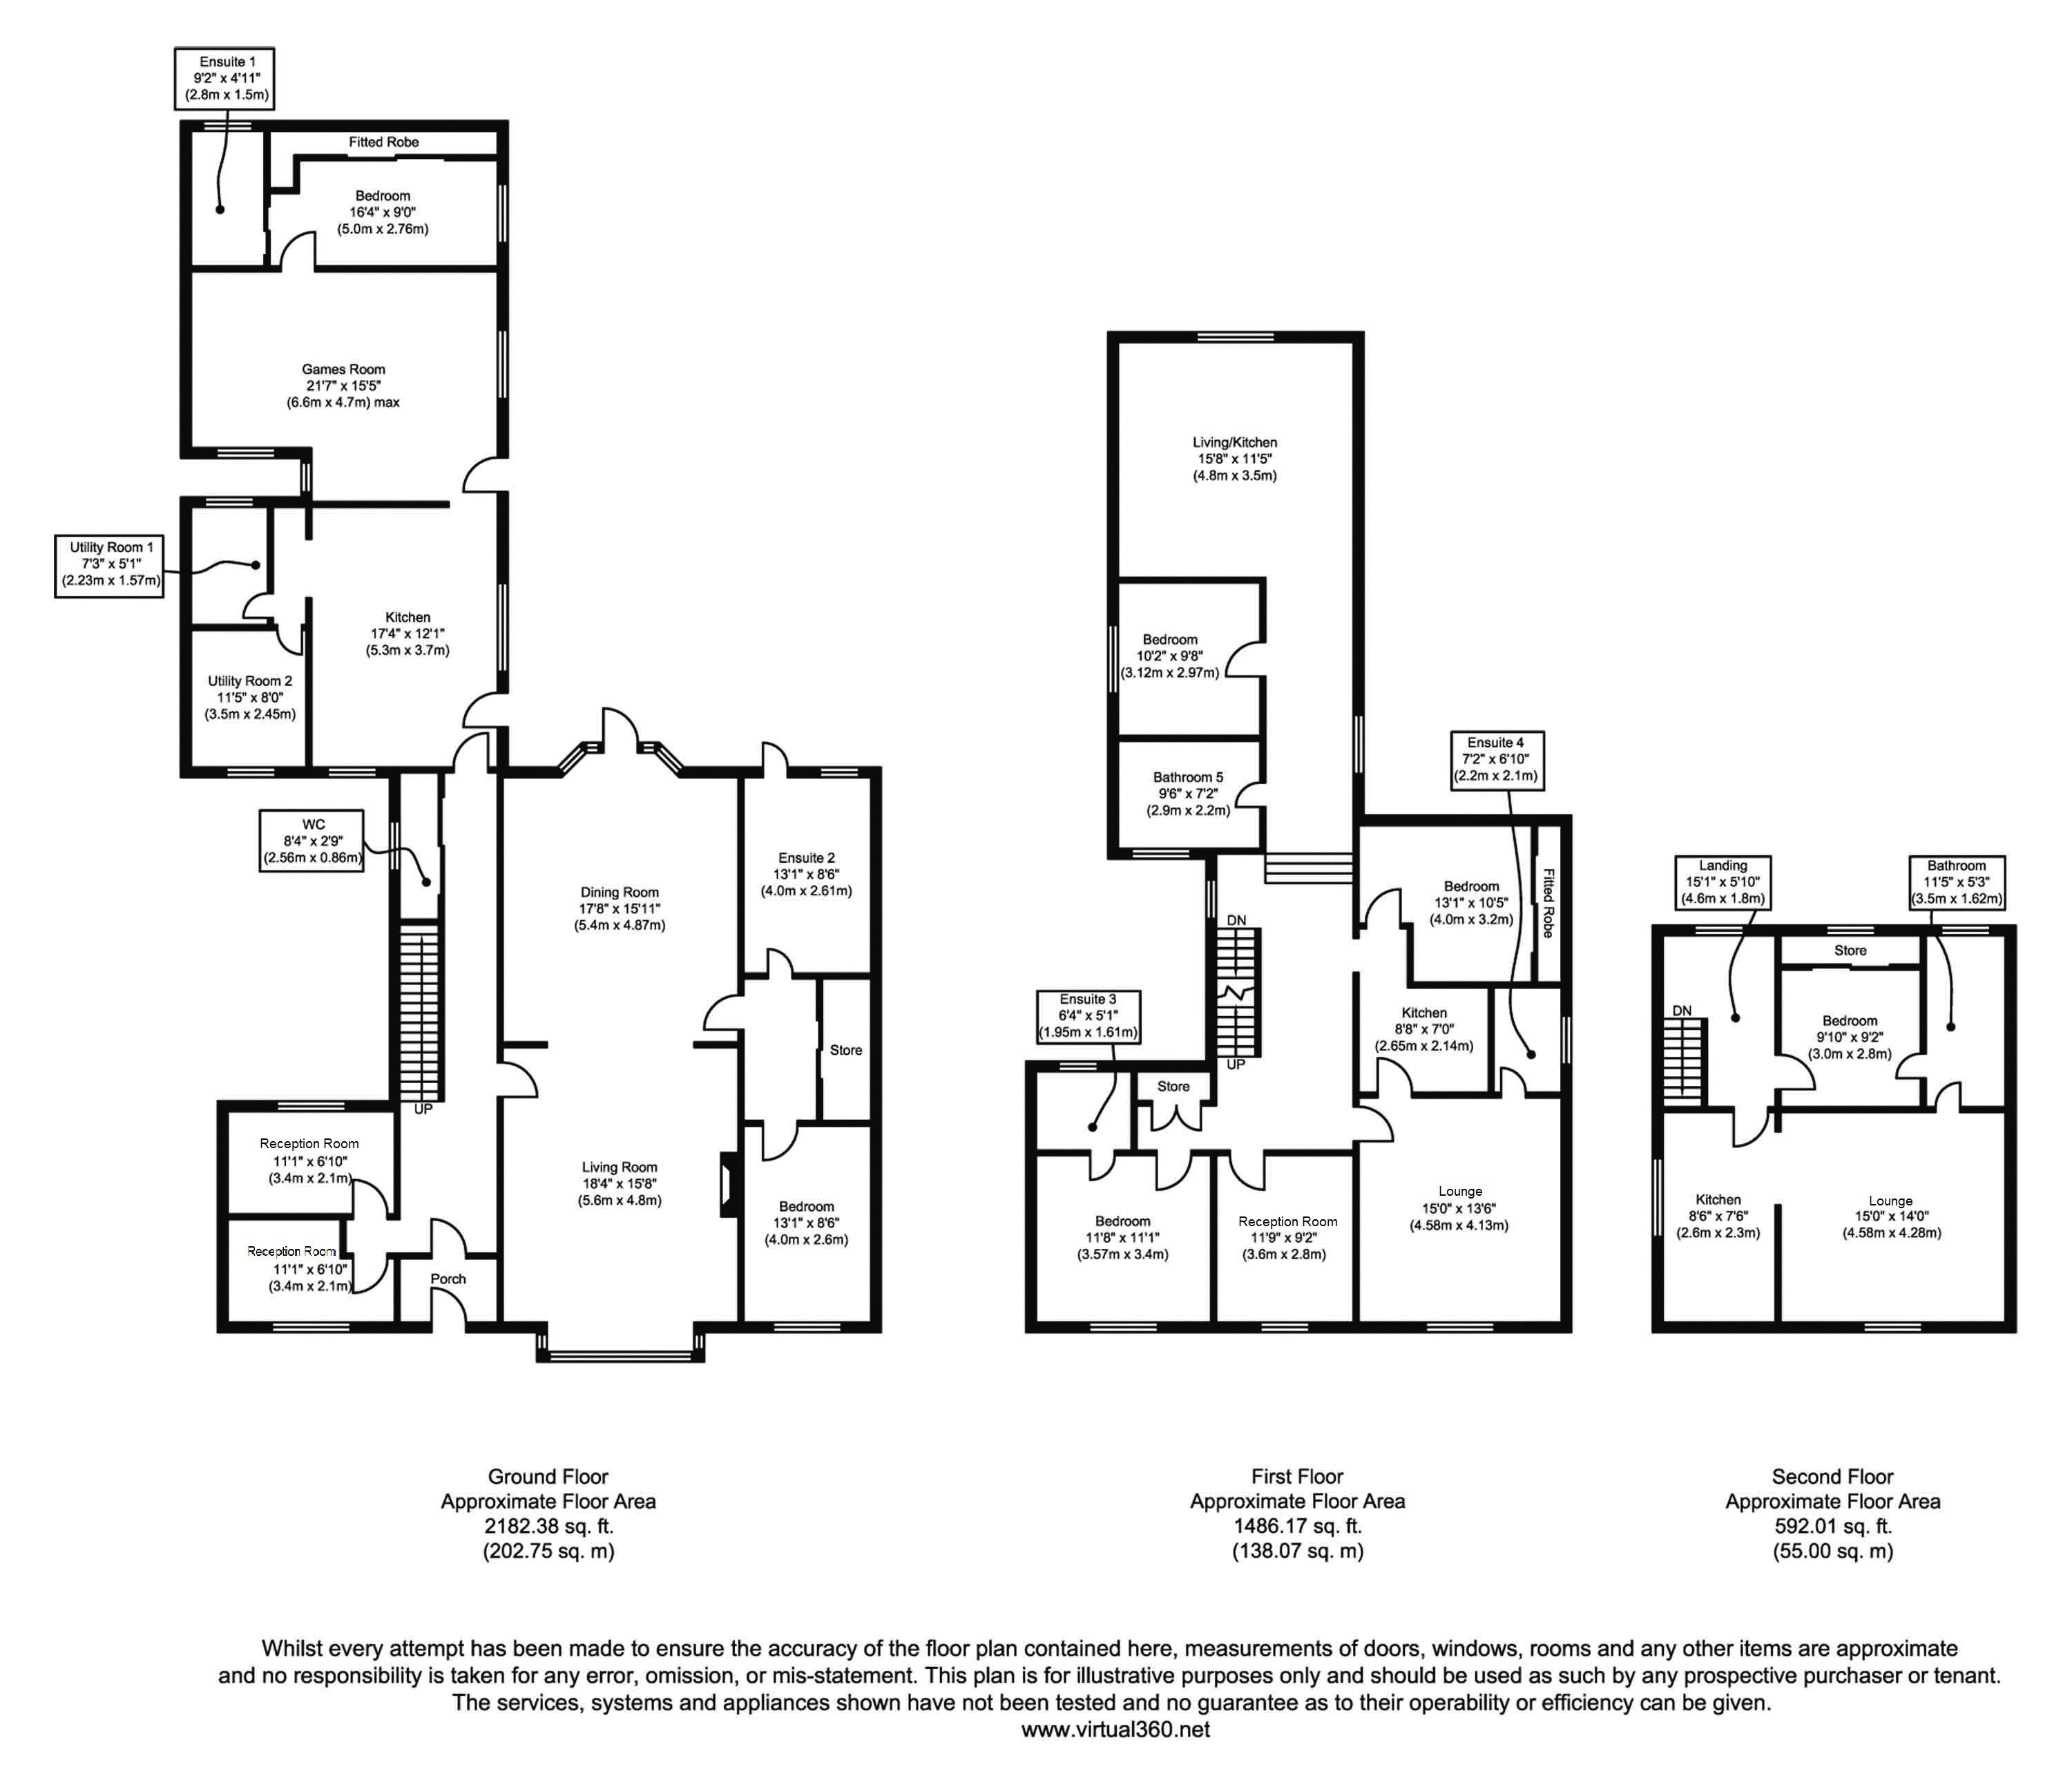 St Andrews Road South, Lytham St Annes floor plan